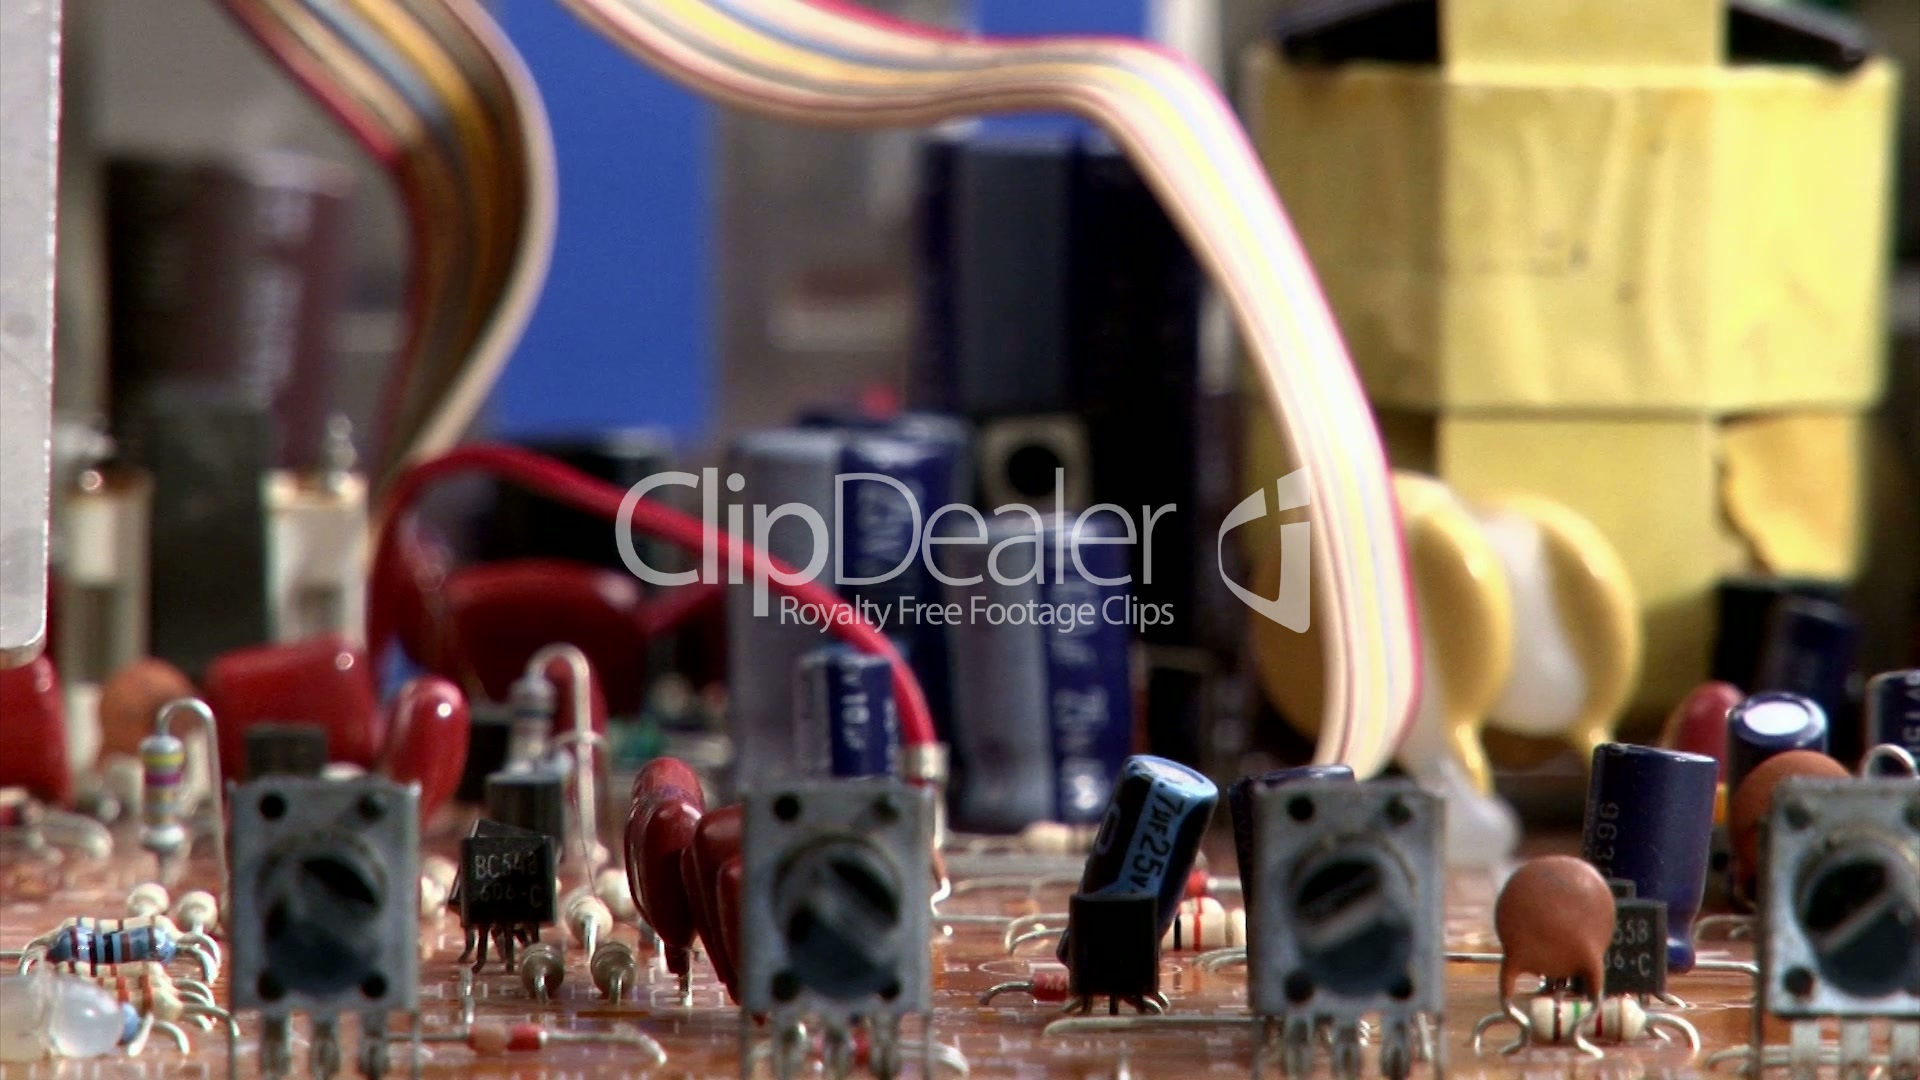 Electronics Circuit Board Royalty Free Video And Stock Footage Trace